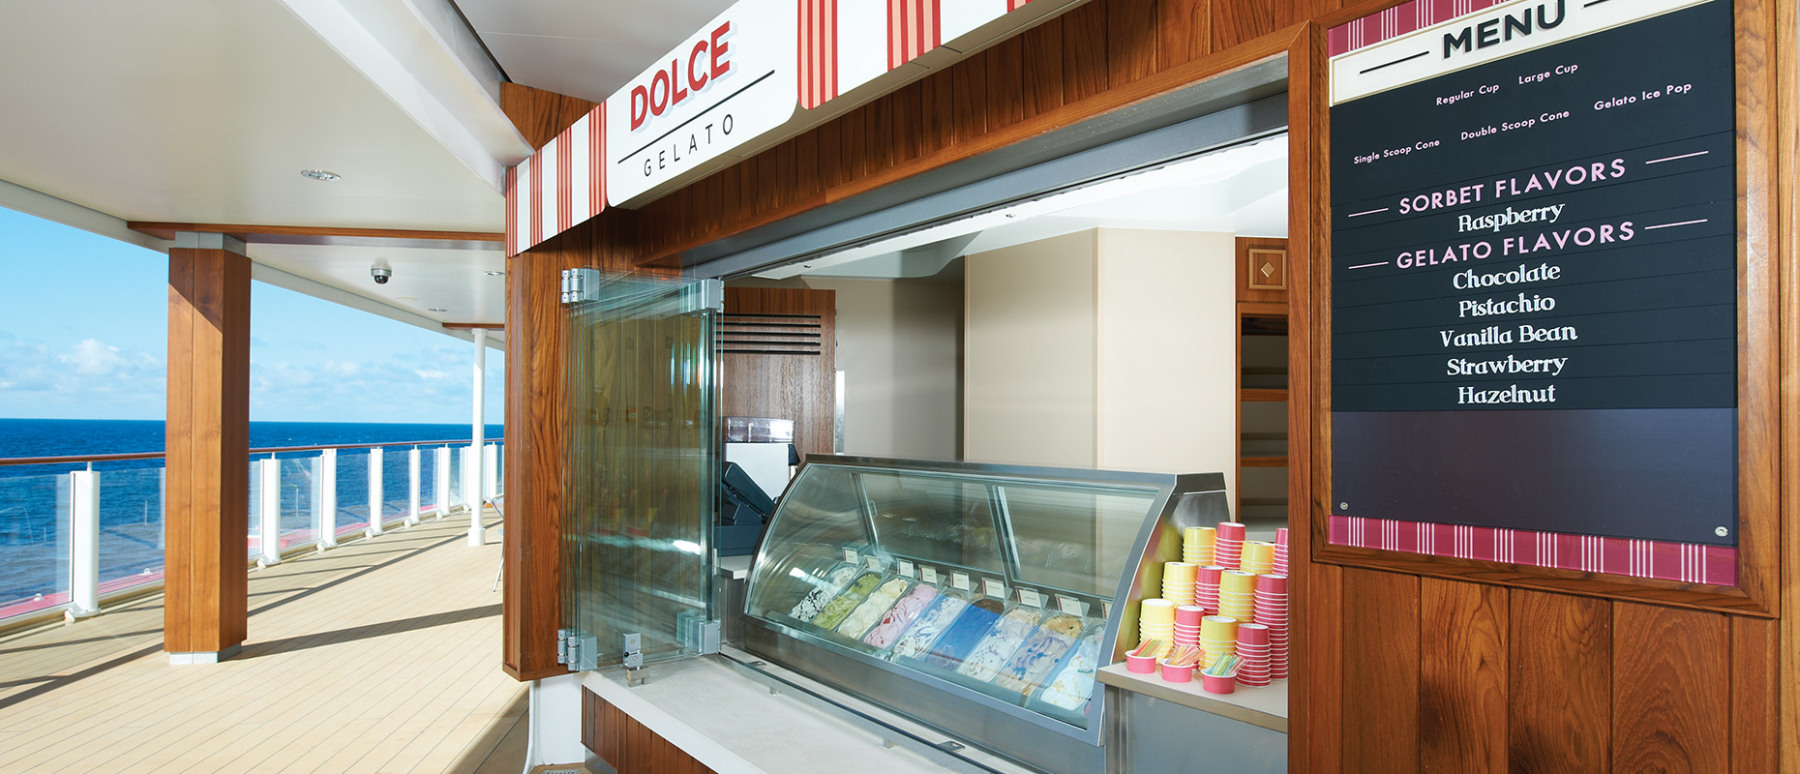 Norwegian Cruise Line Norwegian Escape Interior Dolce Gelato.jpg